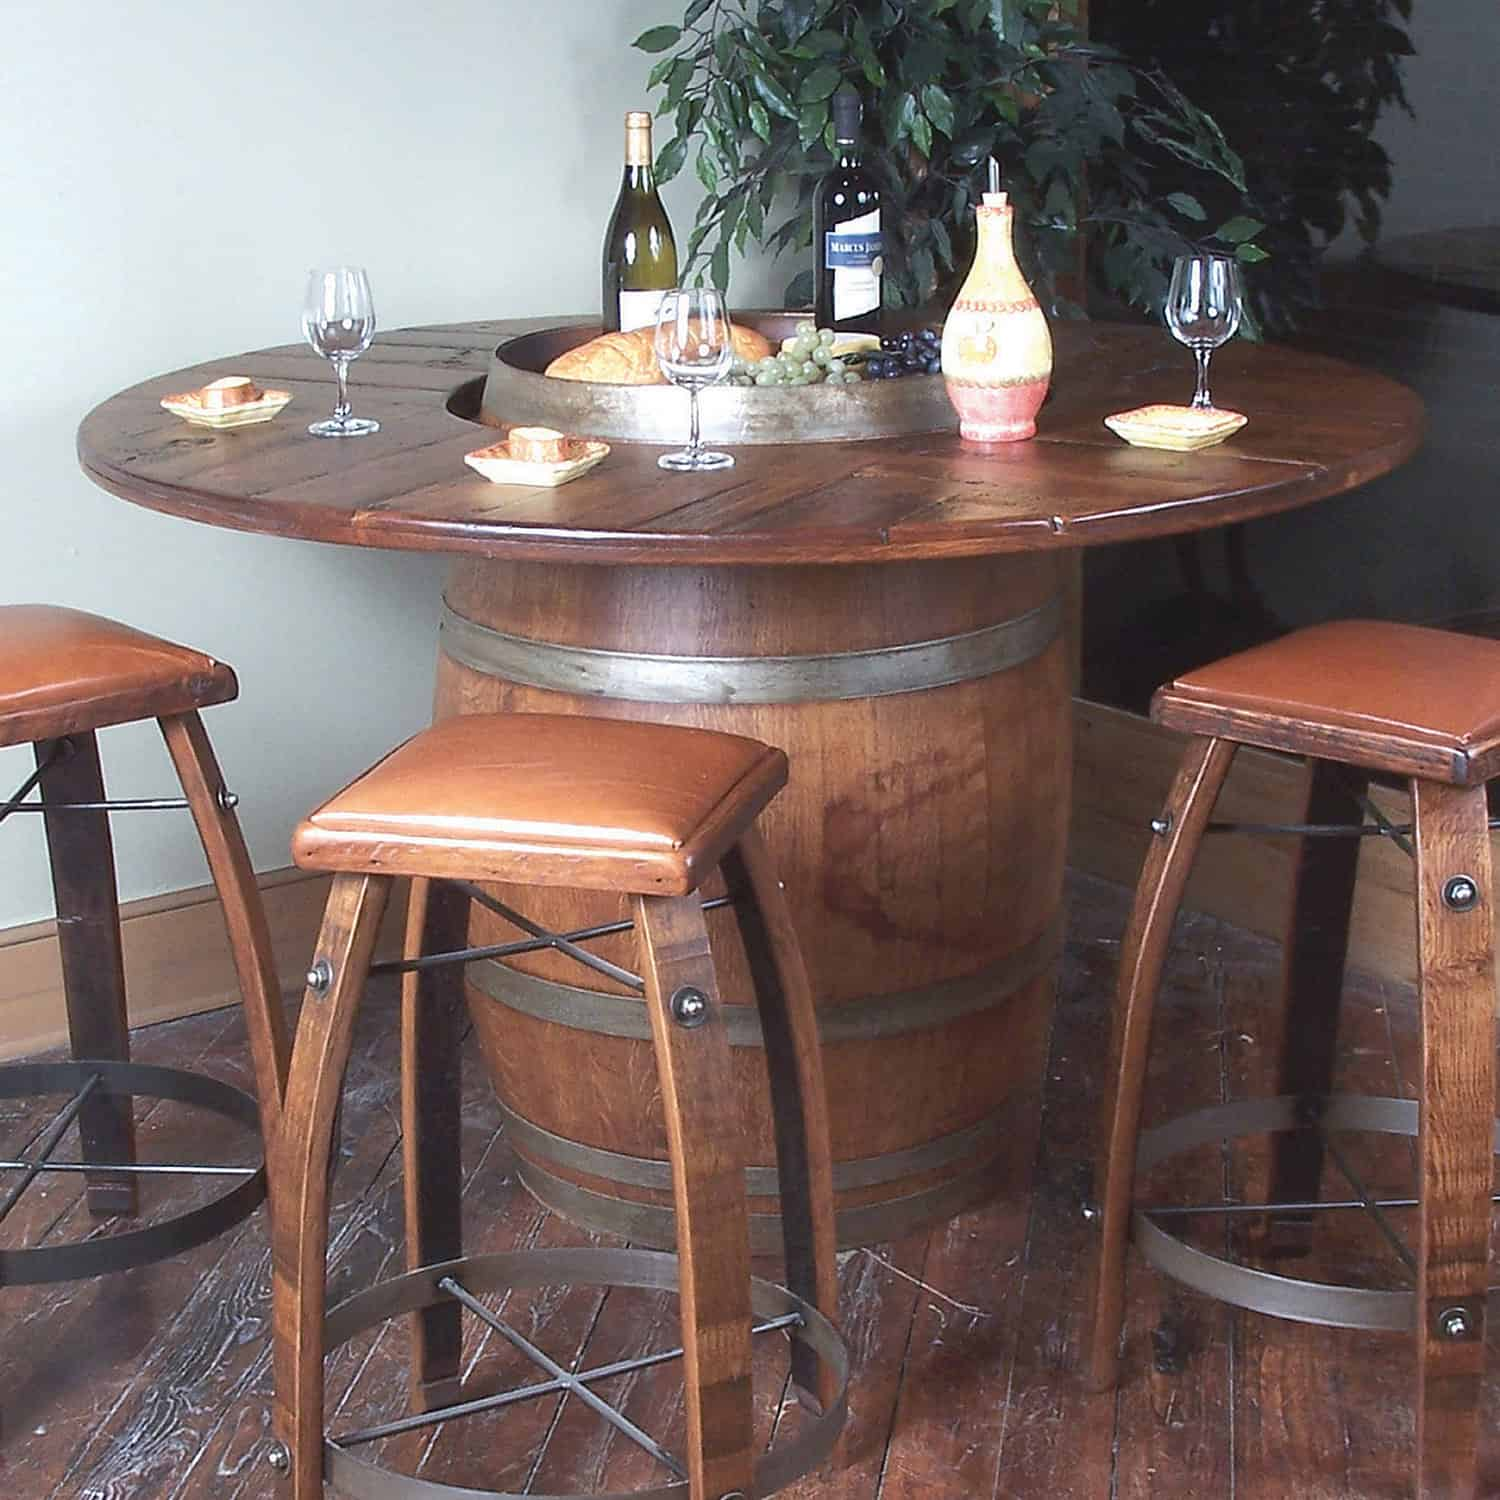 old wooden barrel chairs chair and a half recliners leather 135 wine furniture ideas you can diy or buy photos